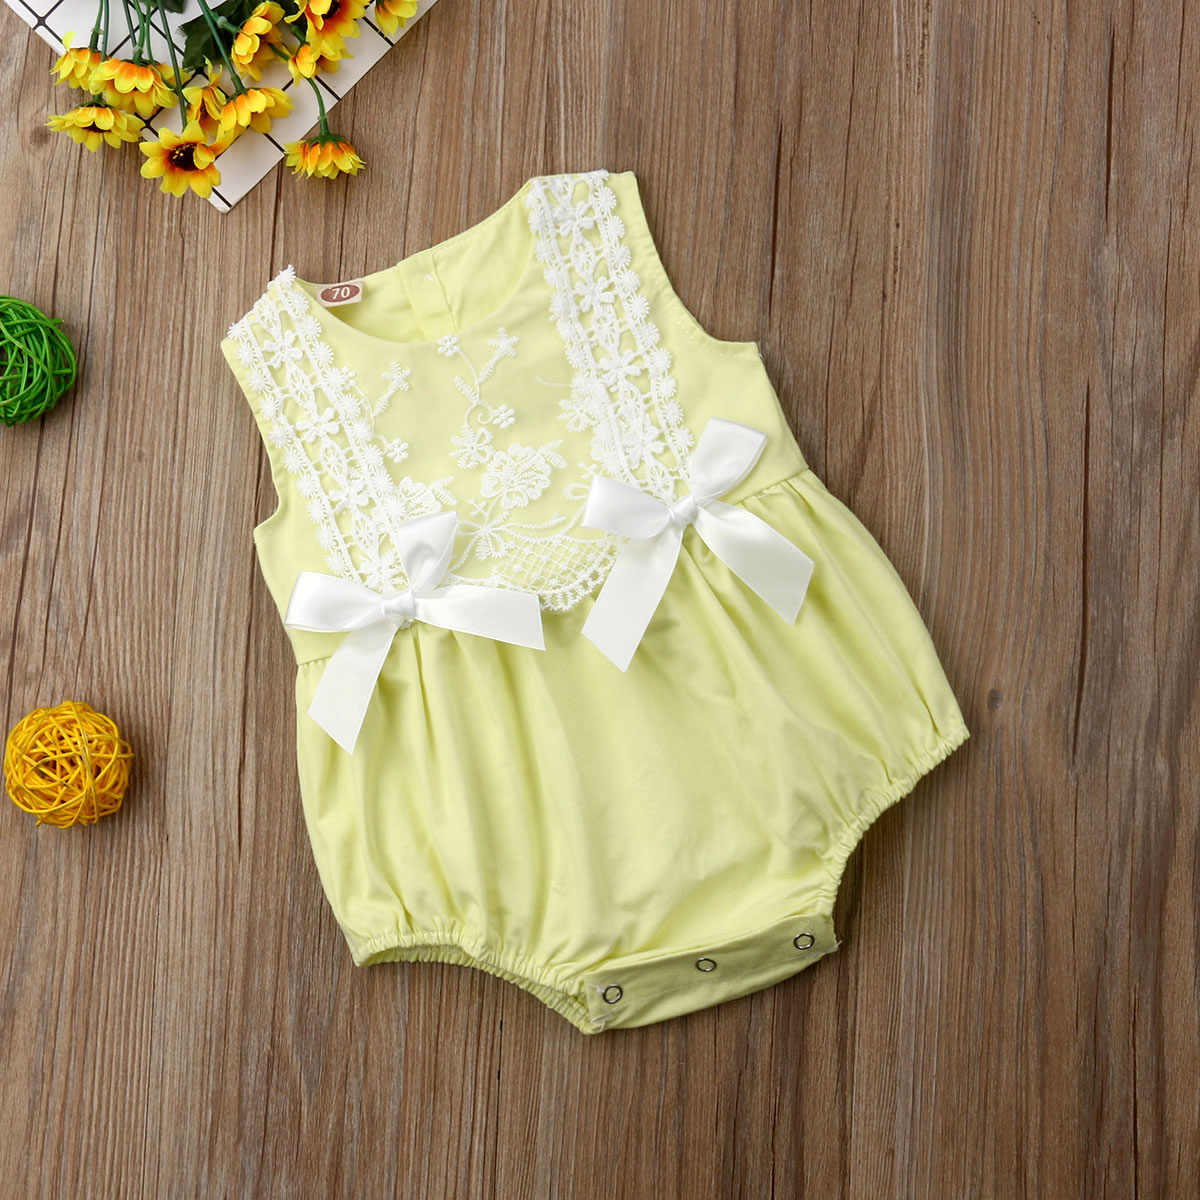 eb63ee0e437 ... 2019 New Infant Newborn Baby Girls Clothing Lace Ruffles Rompers  Jumpsuit Cute Bow Sunsuit Summer Baby ...